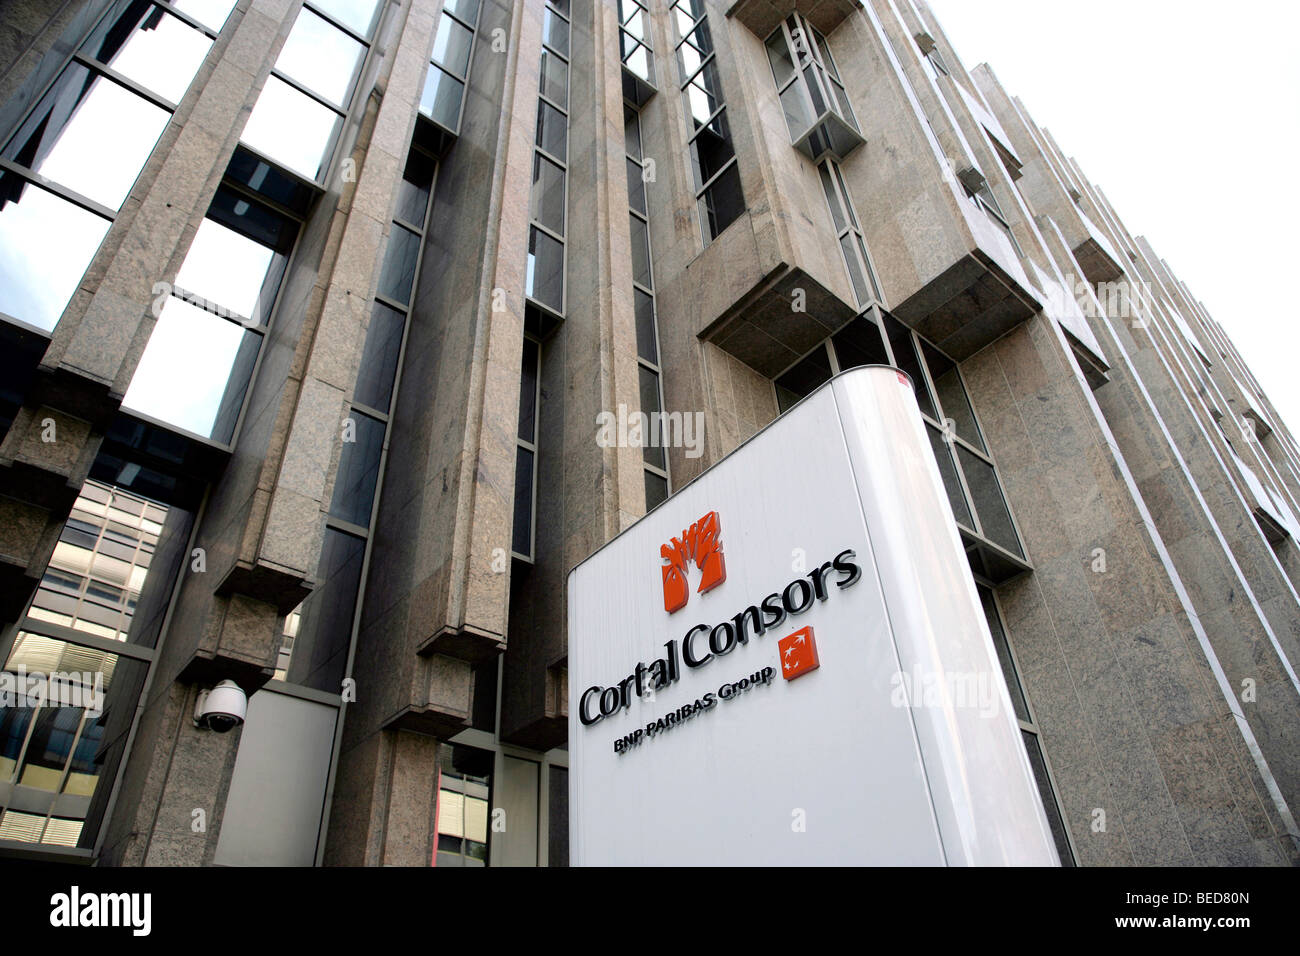 Cortal Consors direct bank, part of the BNP Paribas Group bank, Luxembourg, Europe - Stock Image